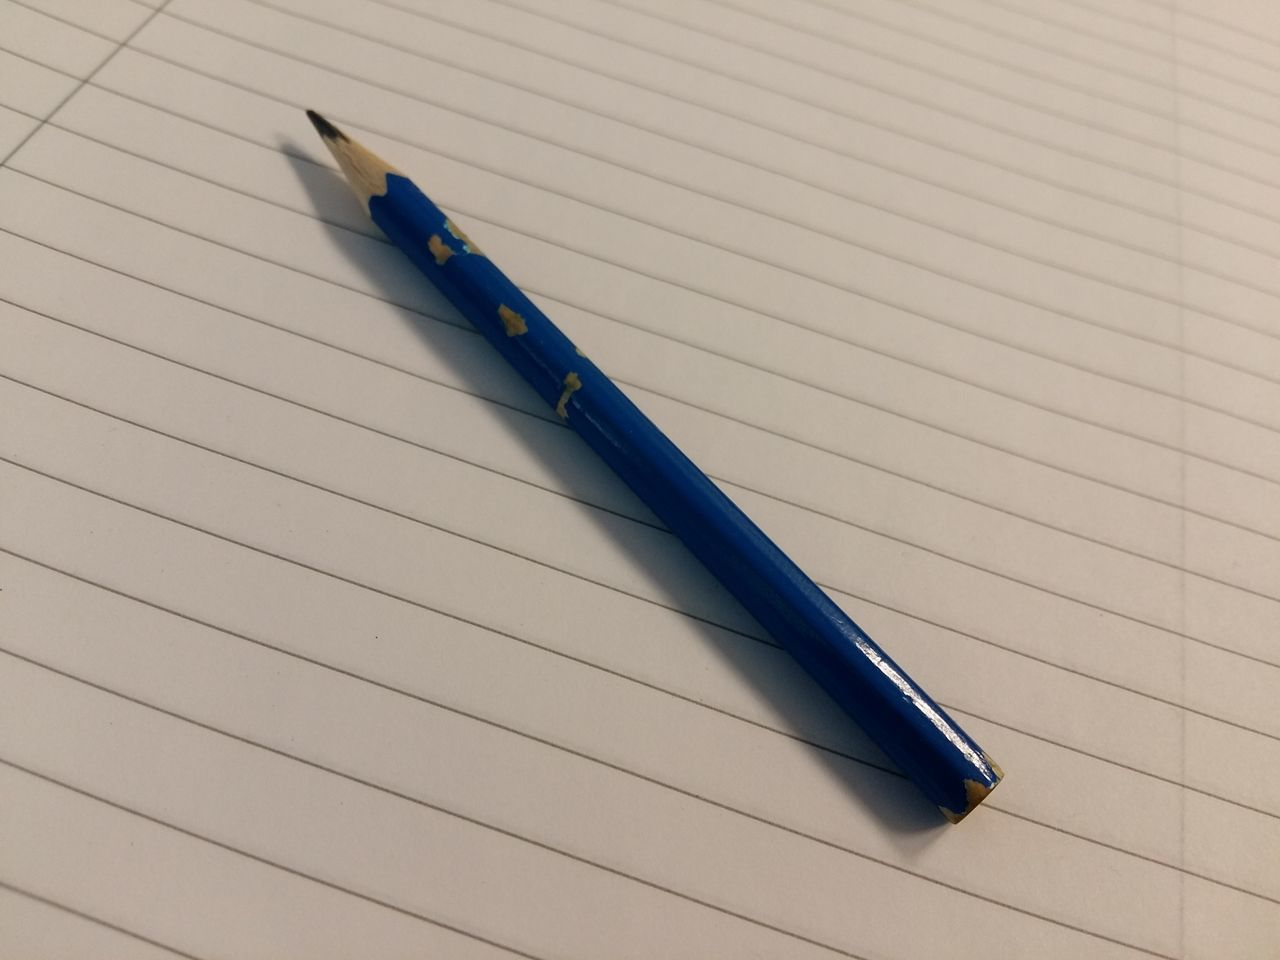 Blue Pencil on lined Paper Back To School Blue Pencil Close-up Day Day At School :) Day At The Office Education Indoors  Learning Lined Paper Lined Pattern No People Note Pad Office Day Office Supplies Paper Pen Pencil Pencil On Paper School Supplies Still Life Table Write Notes Down Writing Paper